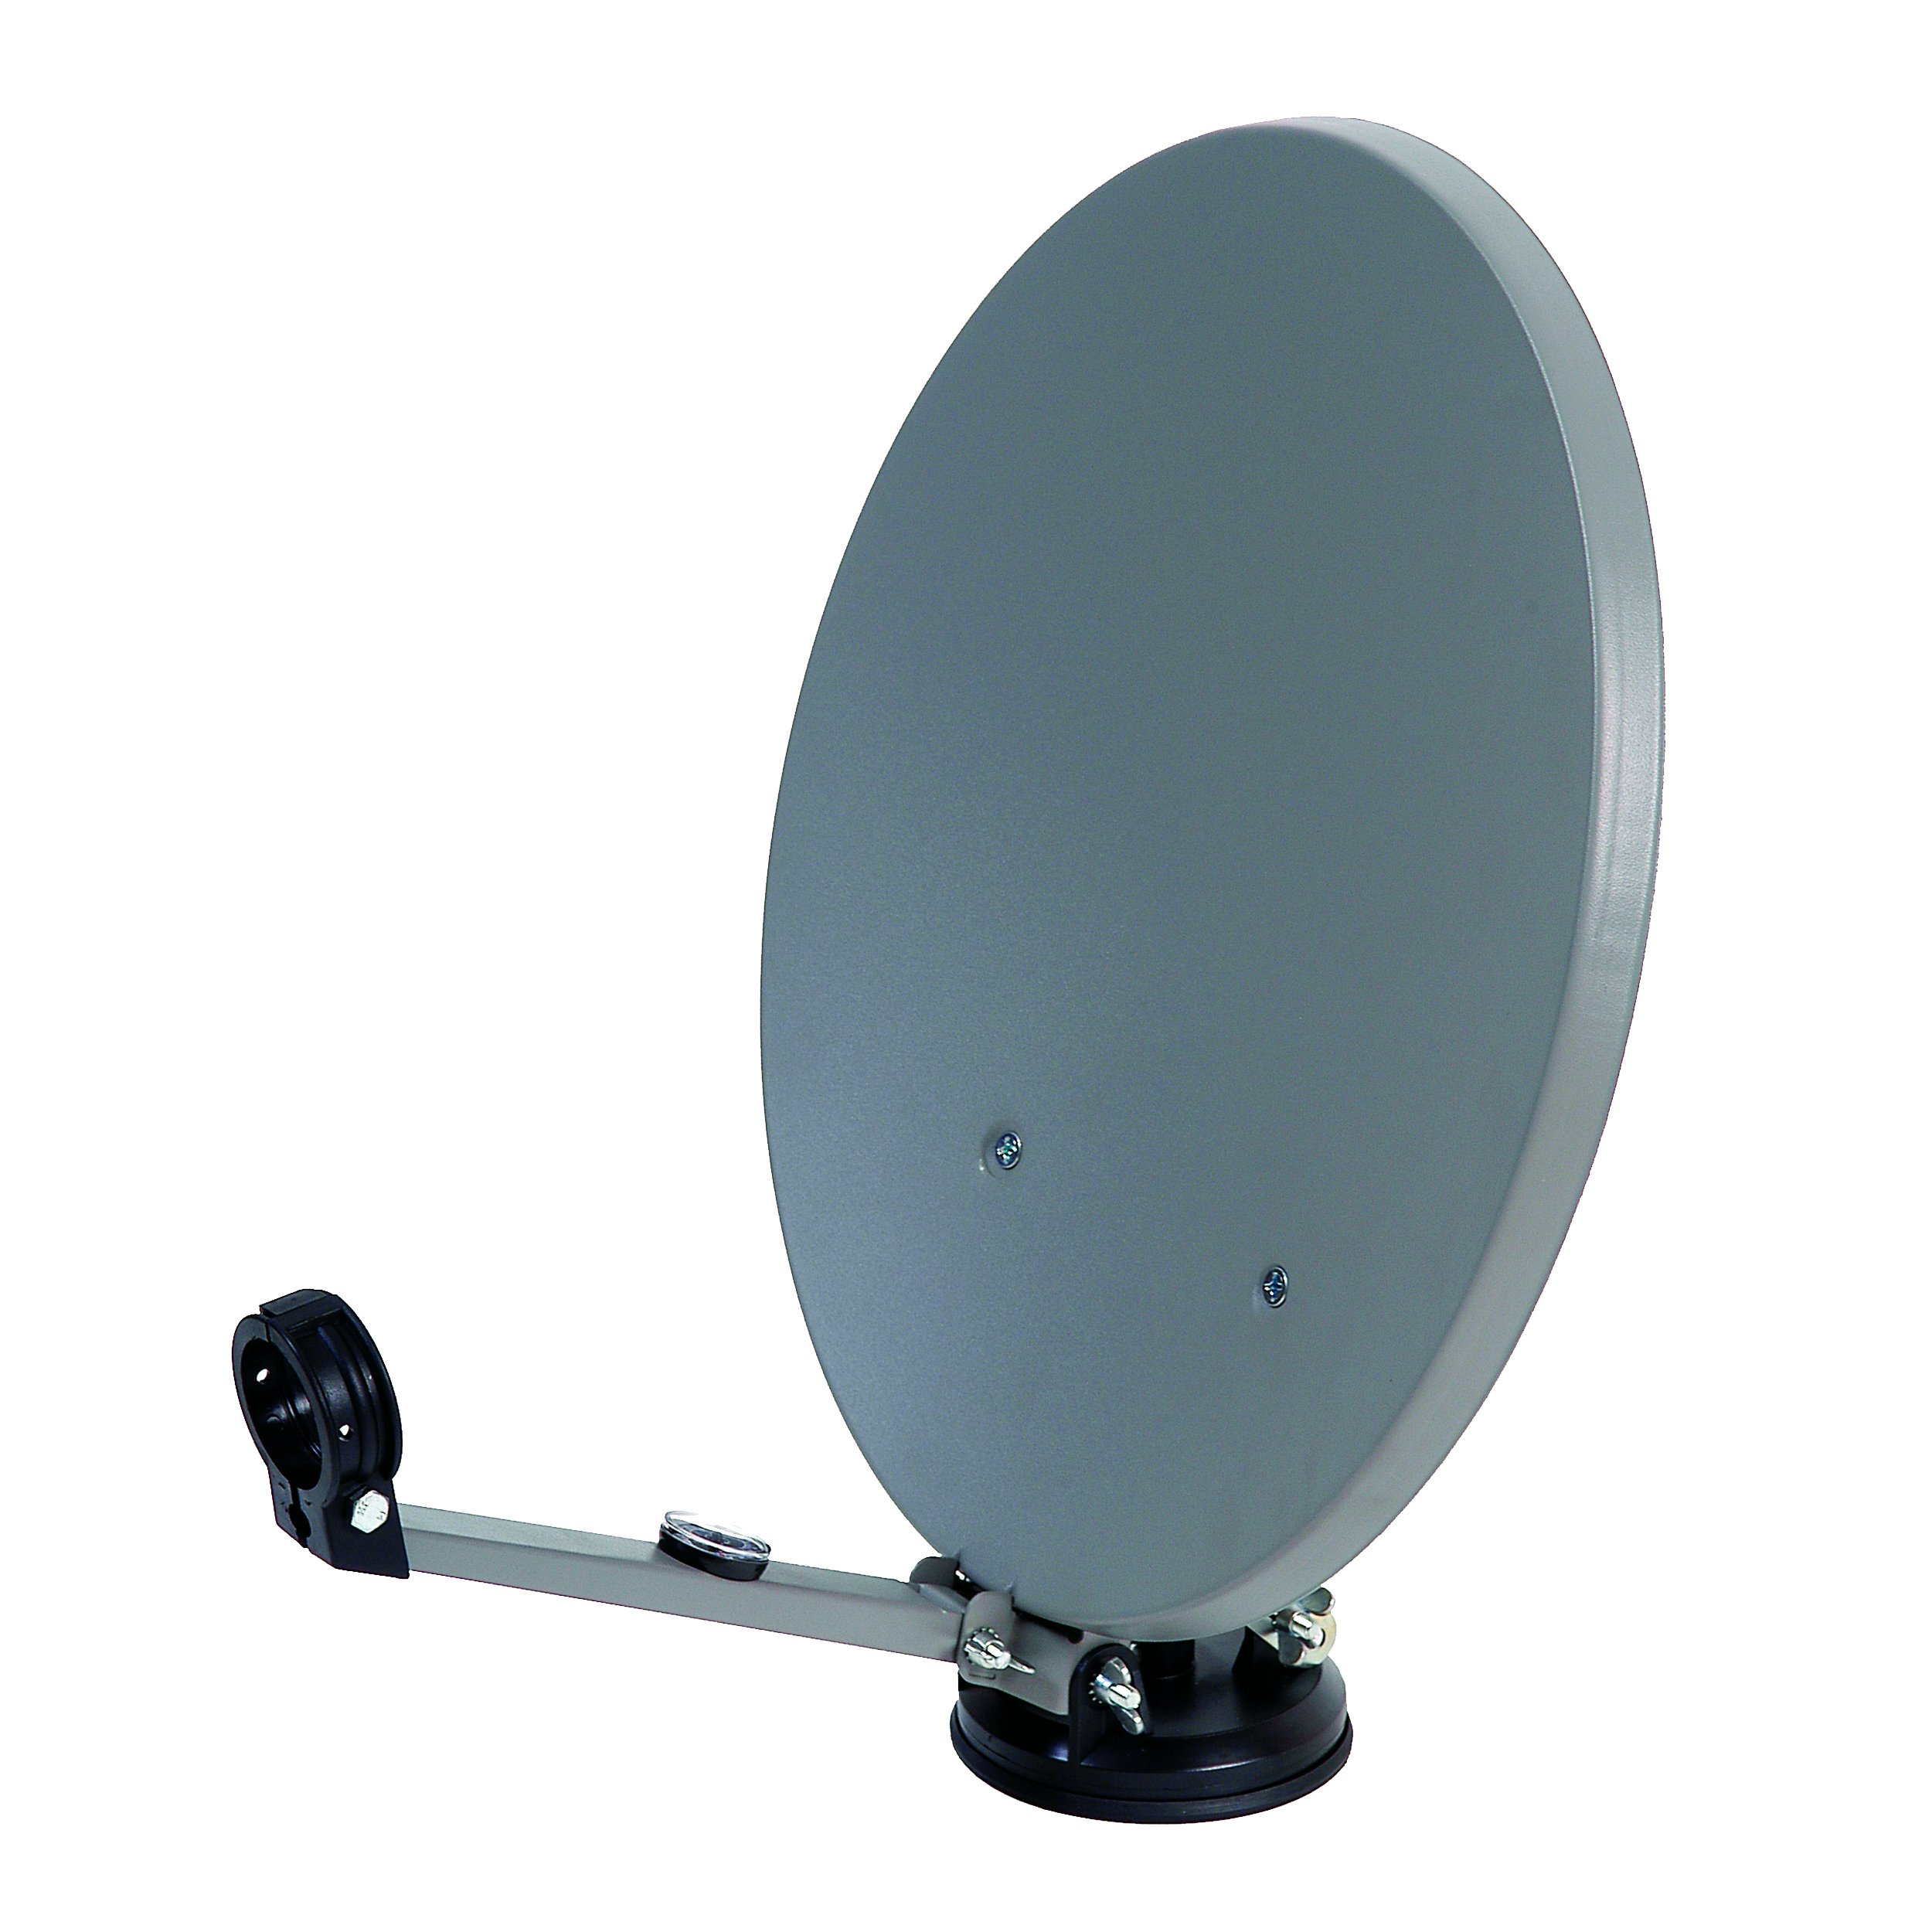 Homevision Technology Satellite Dish Digiwave Portable Satellite Dish, Gray (DWD35PT)